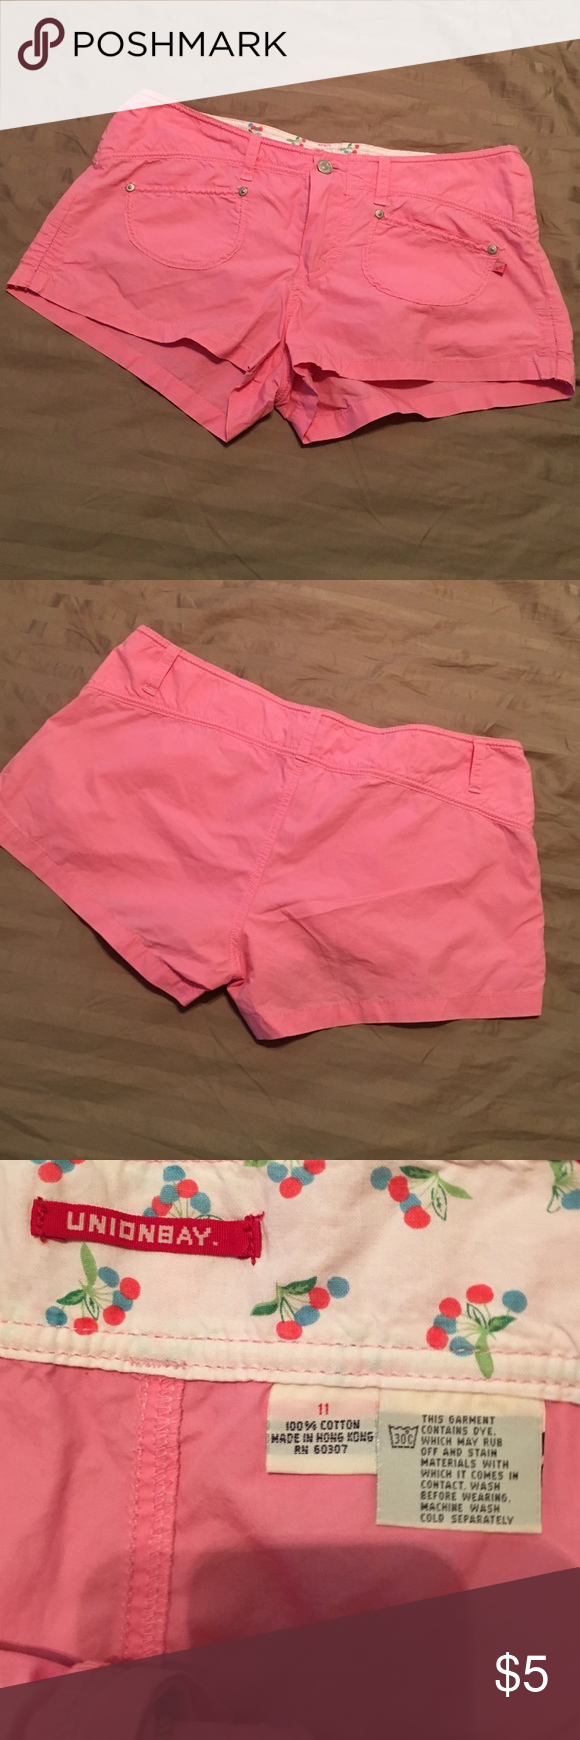 Pink shorts! EUC Unionbay size 11 Pink shorts! EUC Unionbay size 11. Worn washed few times, great cute and causal look. Fast shipping and bundle discounts. Unionbay Shorts